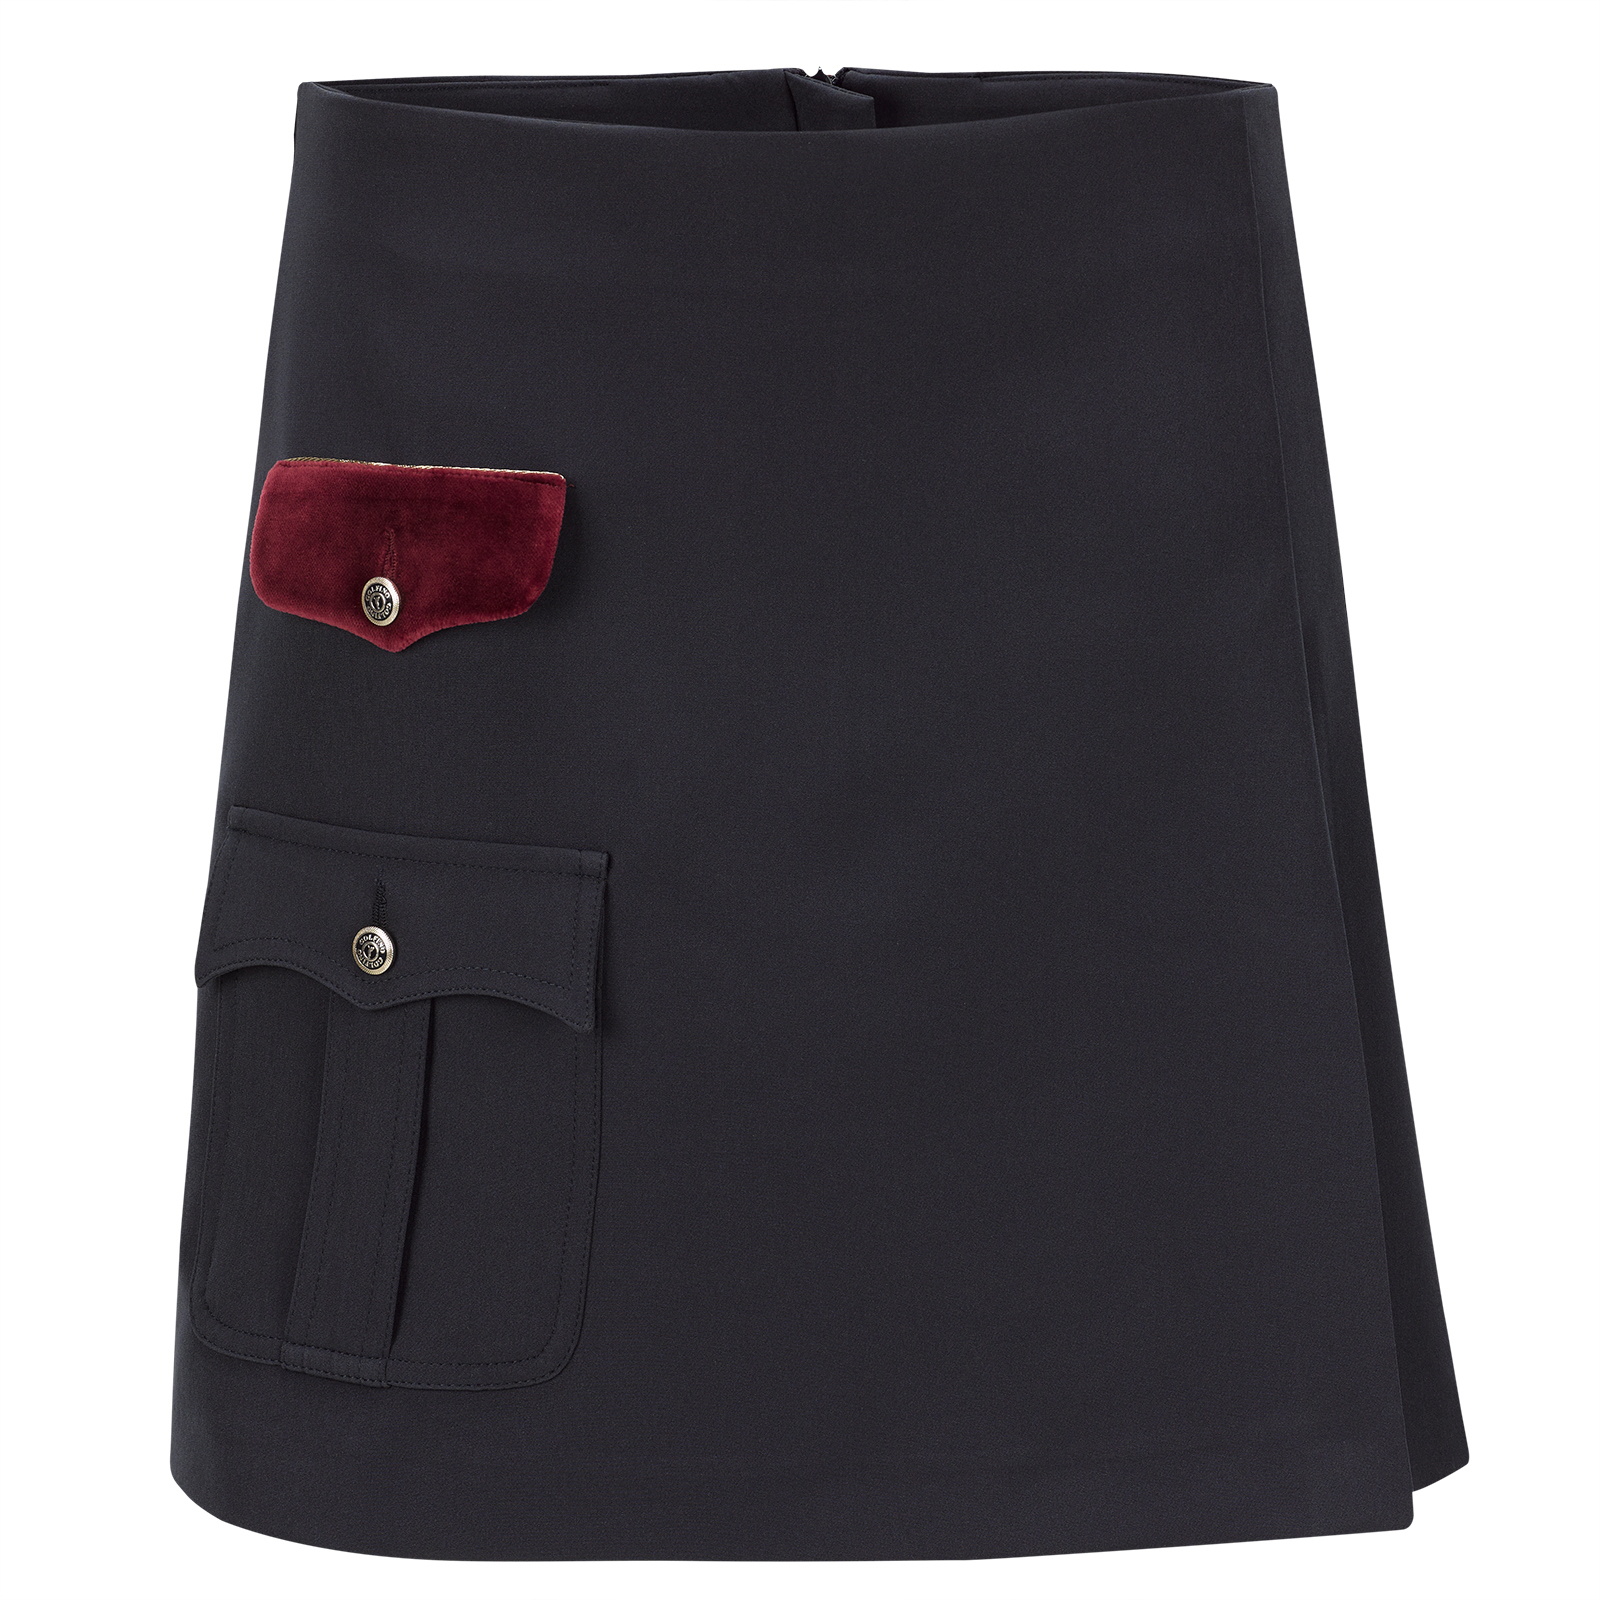 Ladies' premium golf skort from ultra-soft stretch material